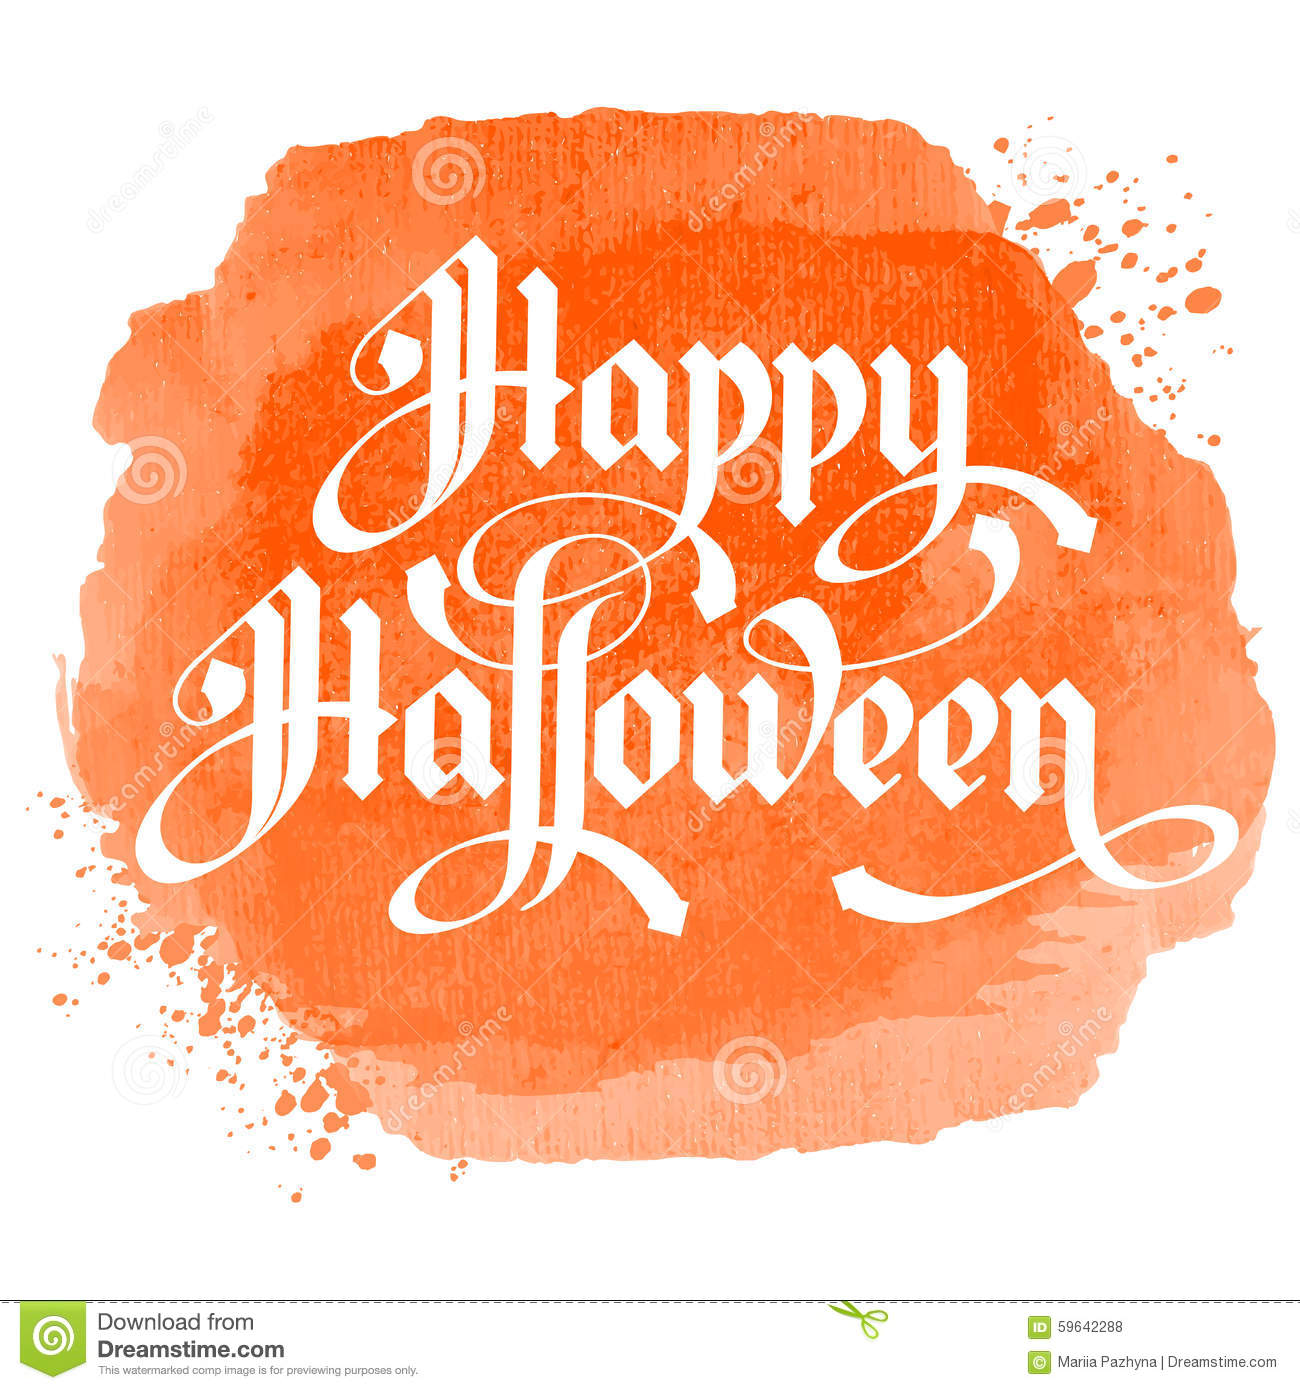 Halloween Stock Vector - Image: 59642288